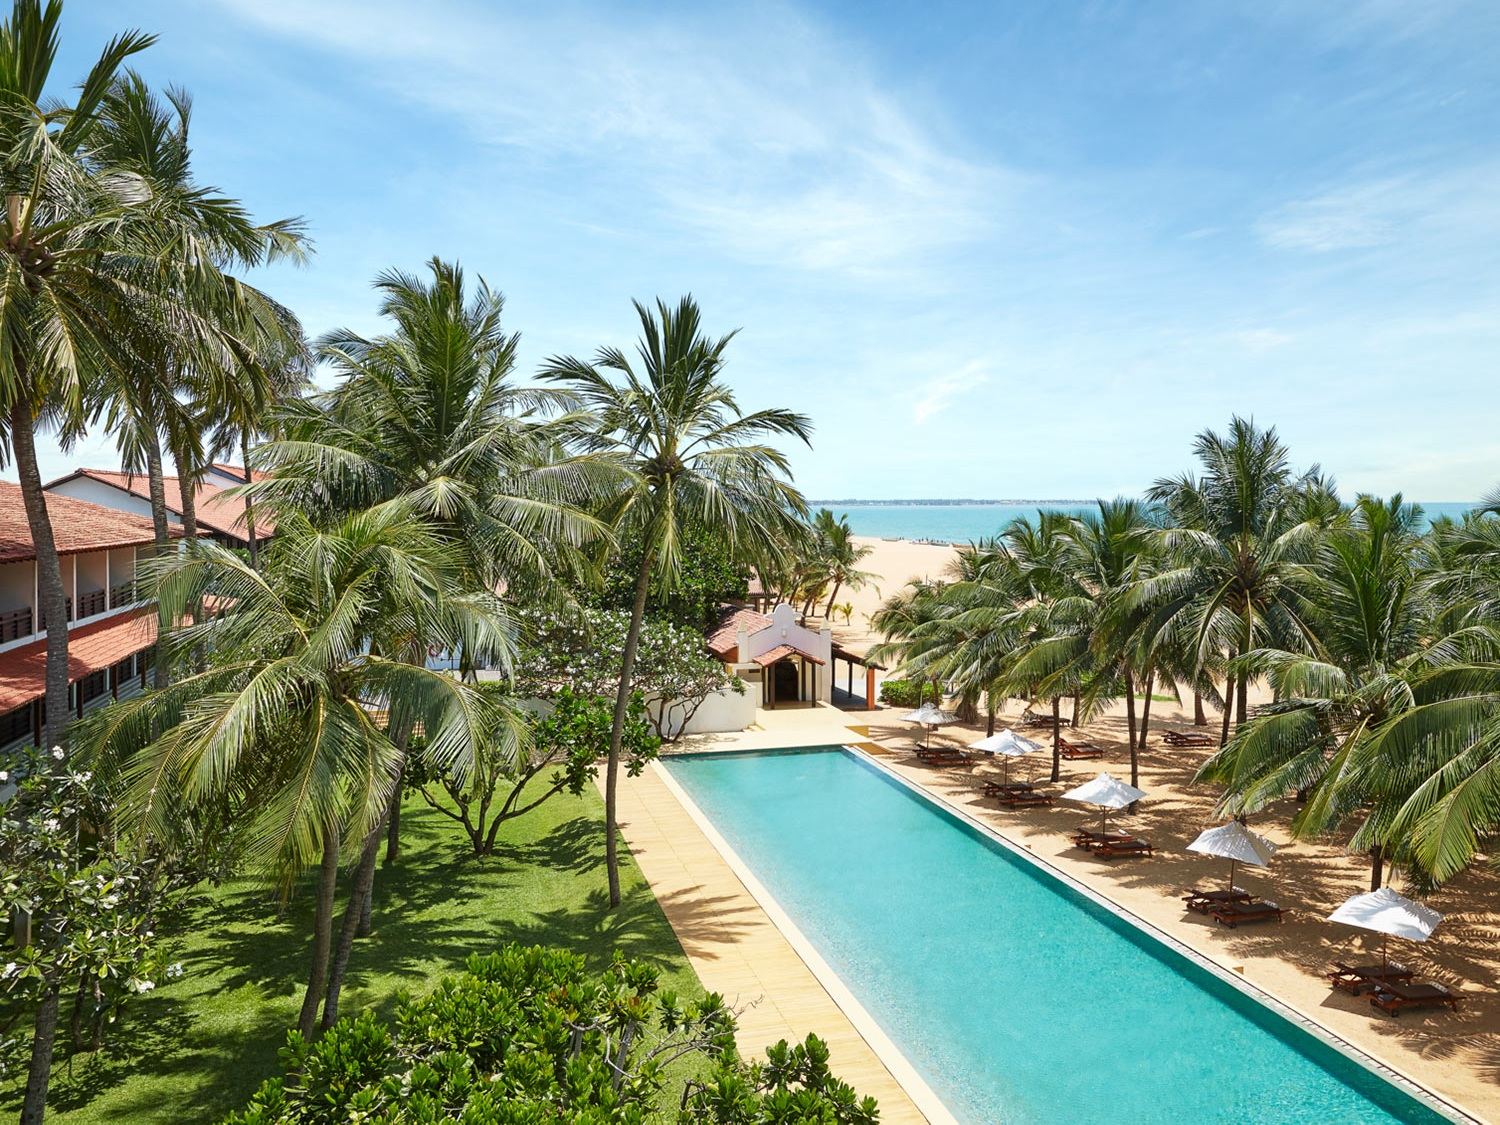 Sri Lanka's best beach resort hotels for a tailor made family trip